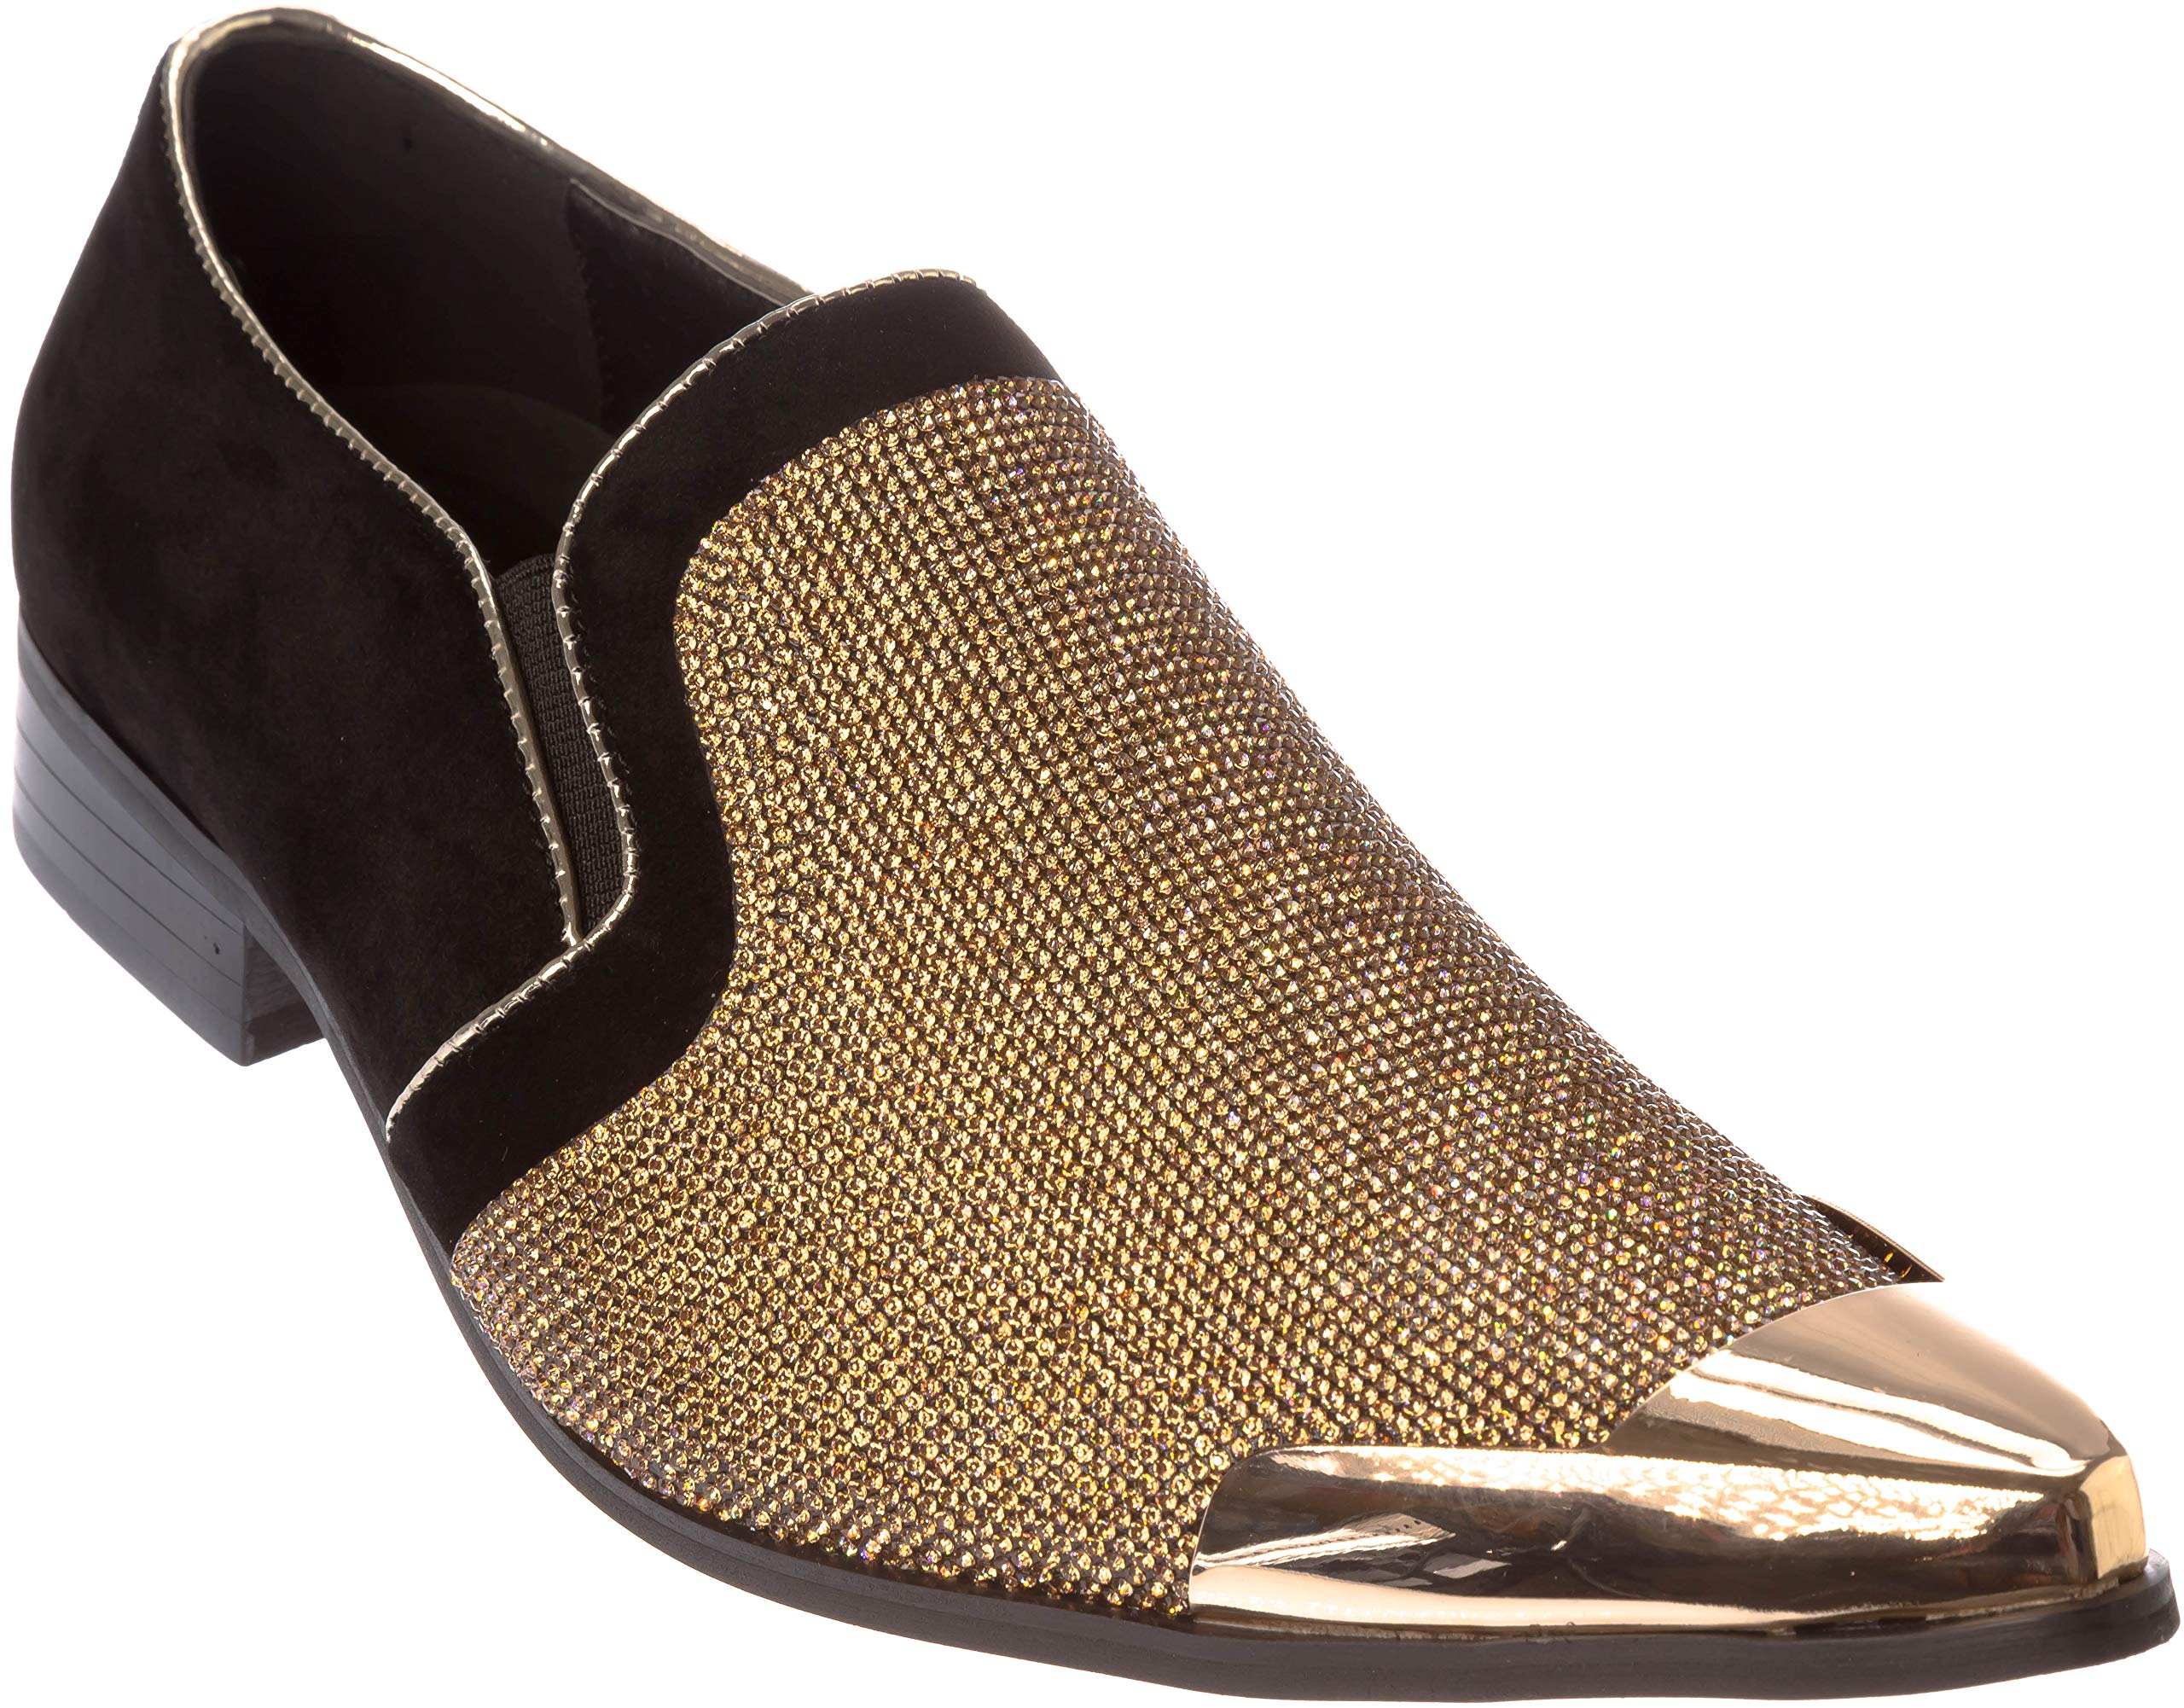 Cristiano Mens Slip-On Fashion-Loafer Sparkling-Glitter Metal-Tip Gold Dress-Shoes Size 12